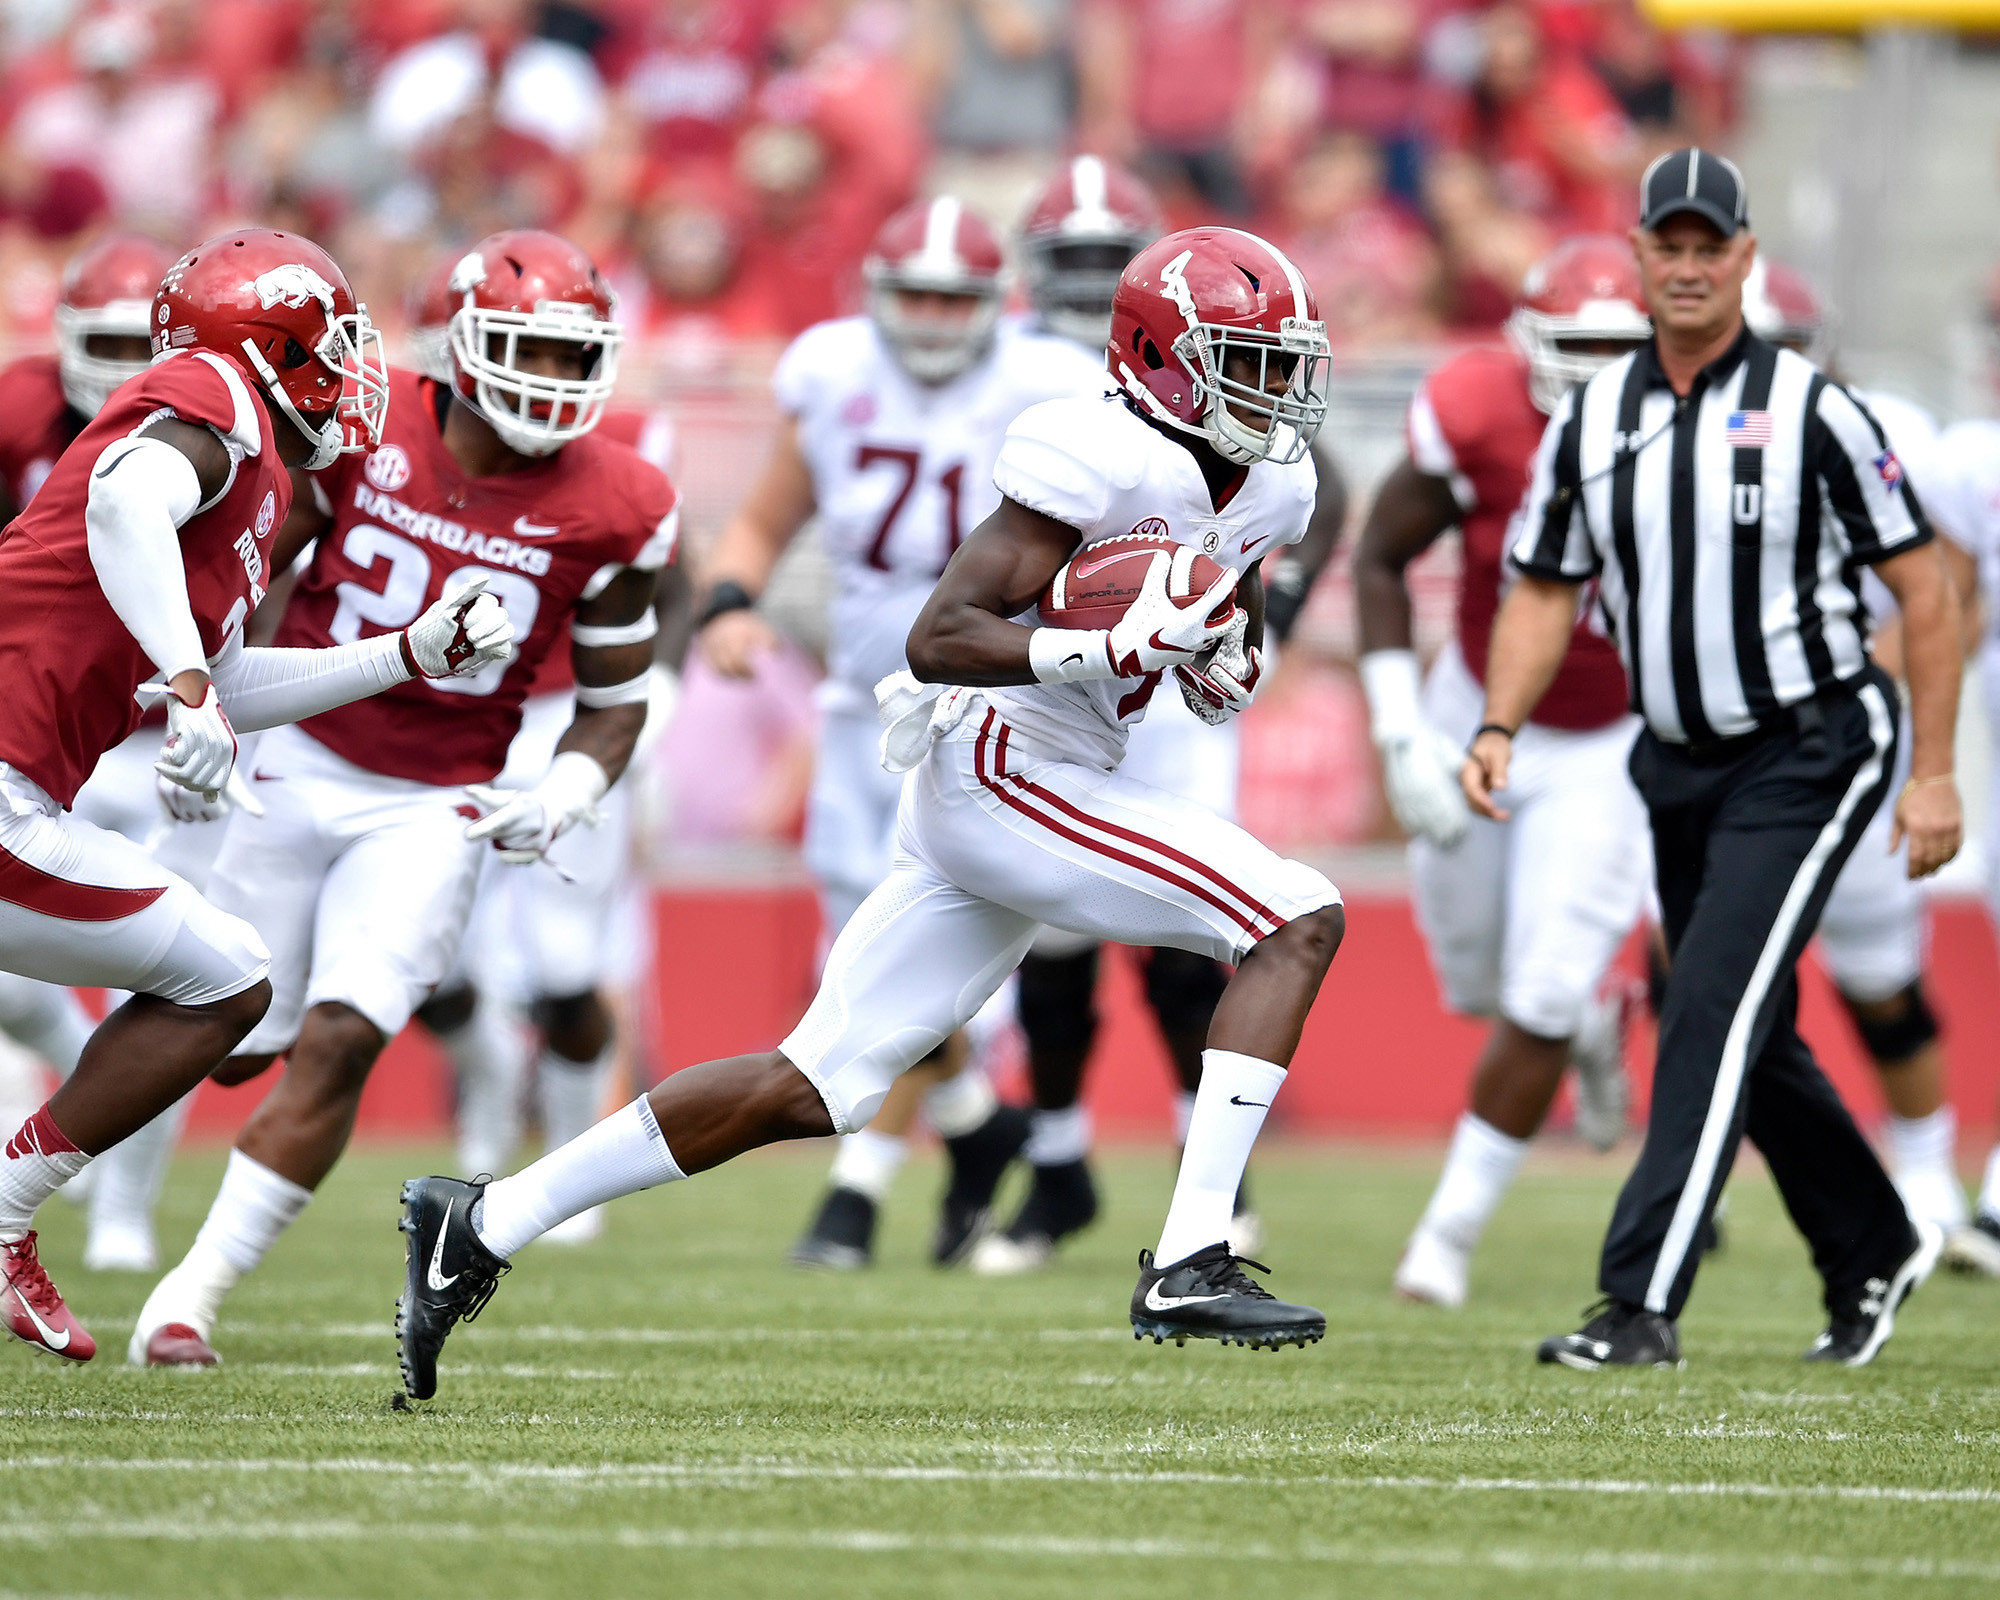 Alabama Crimson Tide wide receiver Jerry Jeudy (4) with a catch on a crossing route in the first half of the NCAA football game against the Arkansas Razorbacks at Razorback Stadium on Oct. 6, 2018, in Fayetteville, Ark. Alabama defeated Arkansas 65-31. (Photo by Lee Walls)